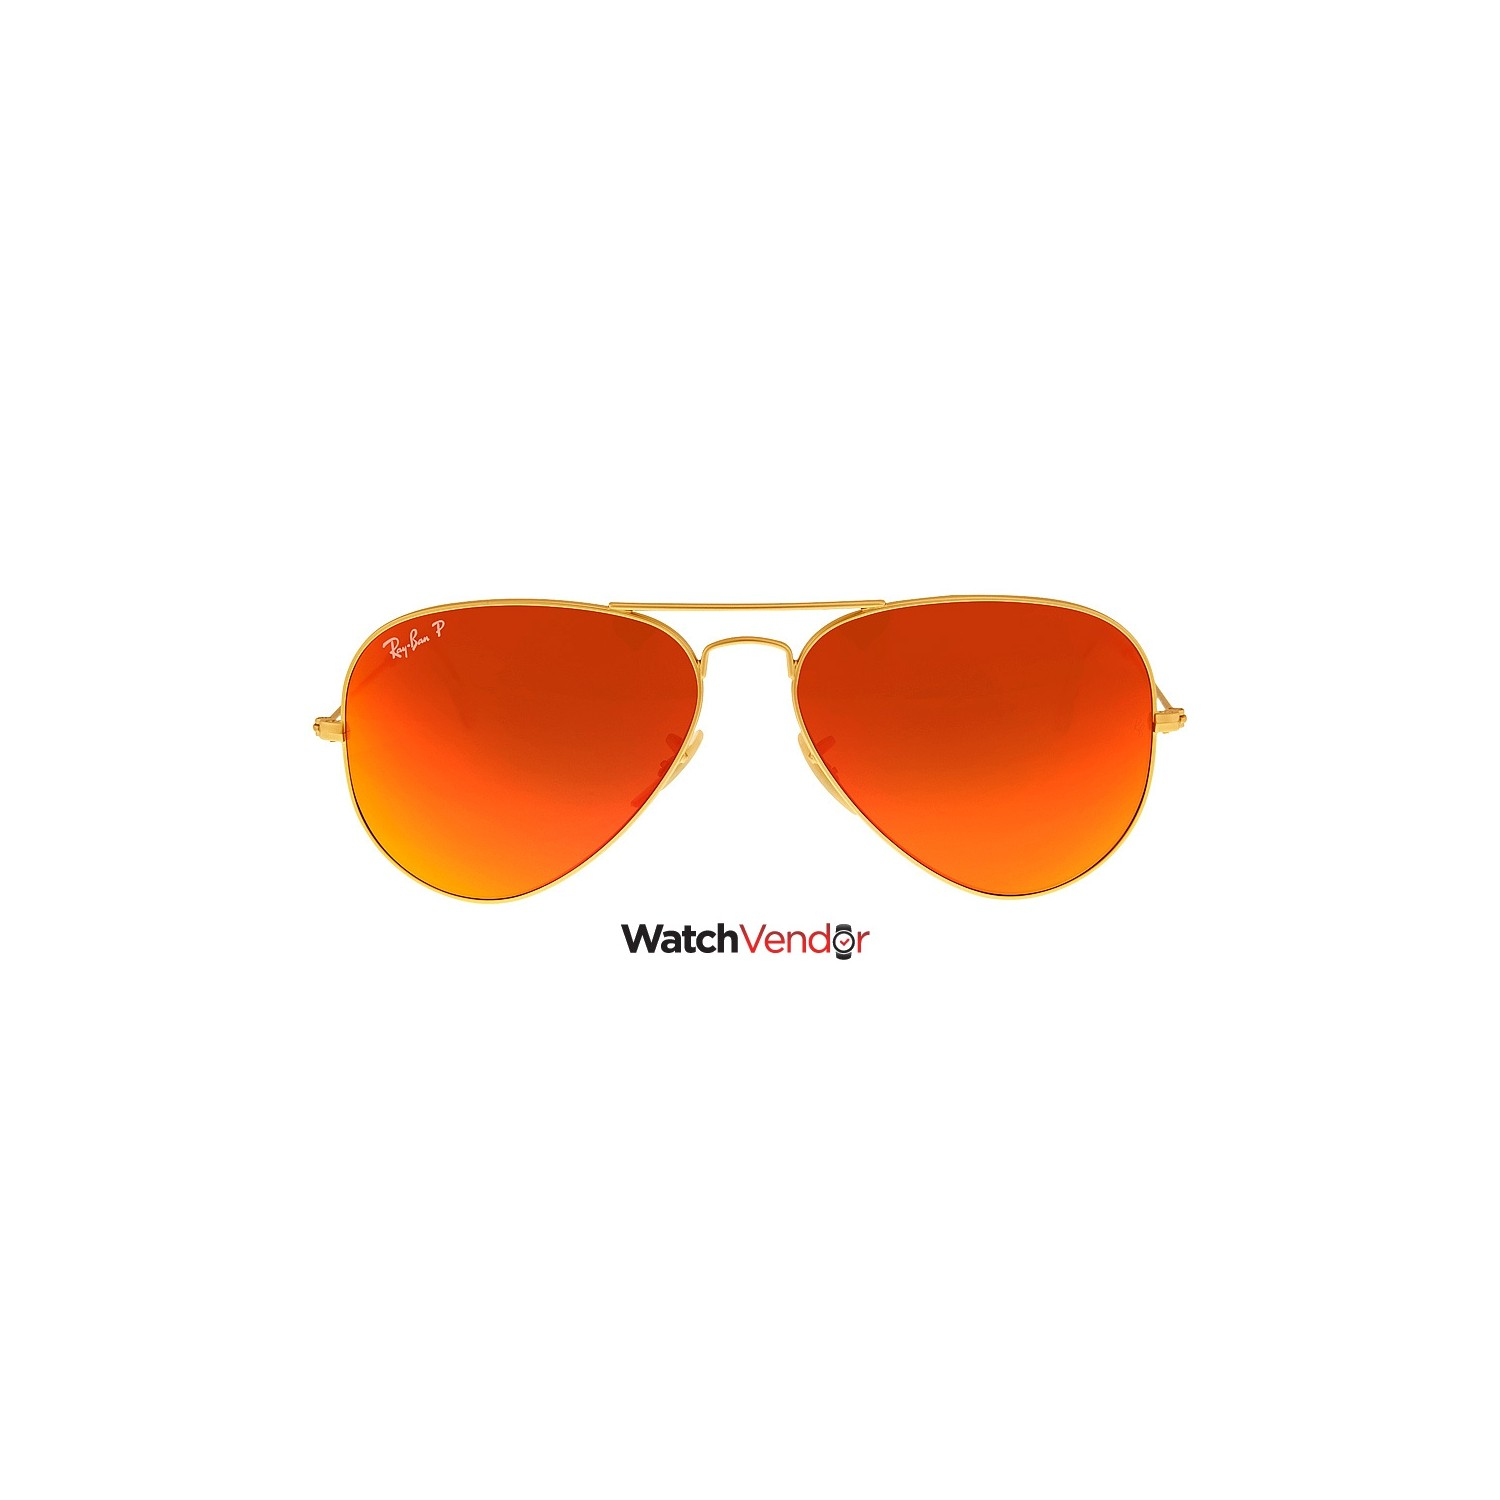 6a2170e893d6 Ray Ban Aviator Flash Polarized Orange Flash Sunglasses RB3025 112 4D 58 -  Online Only